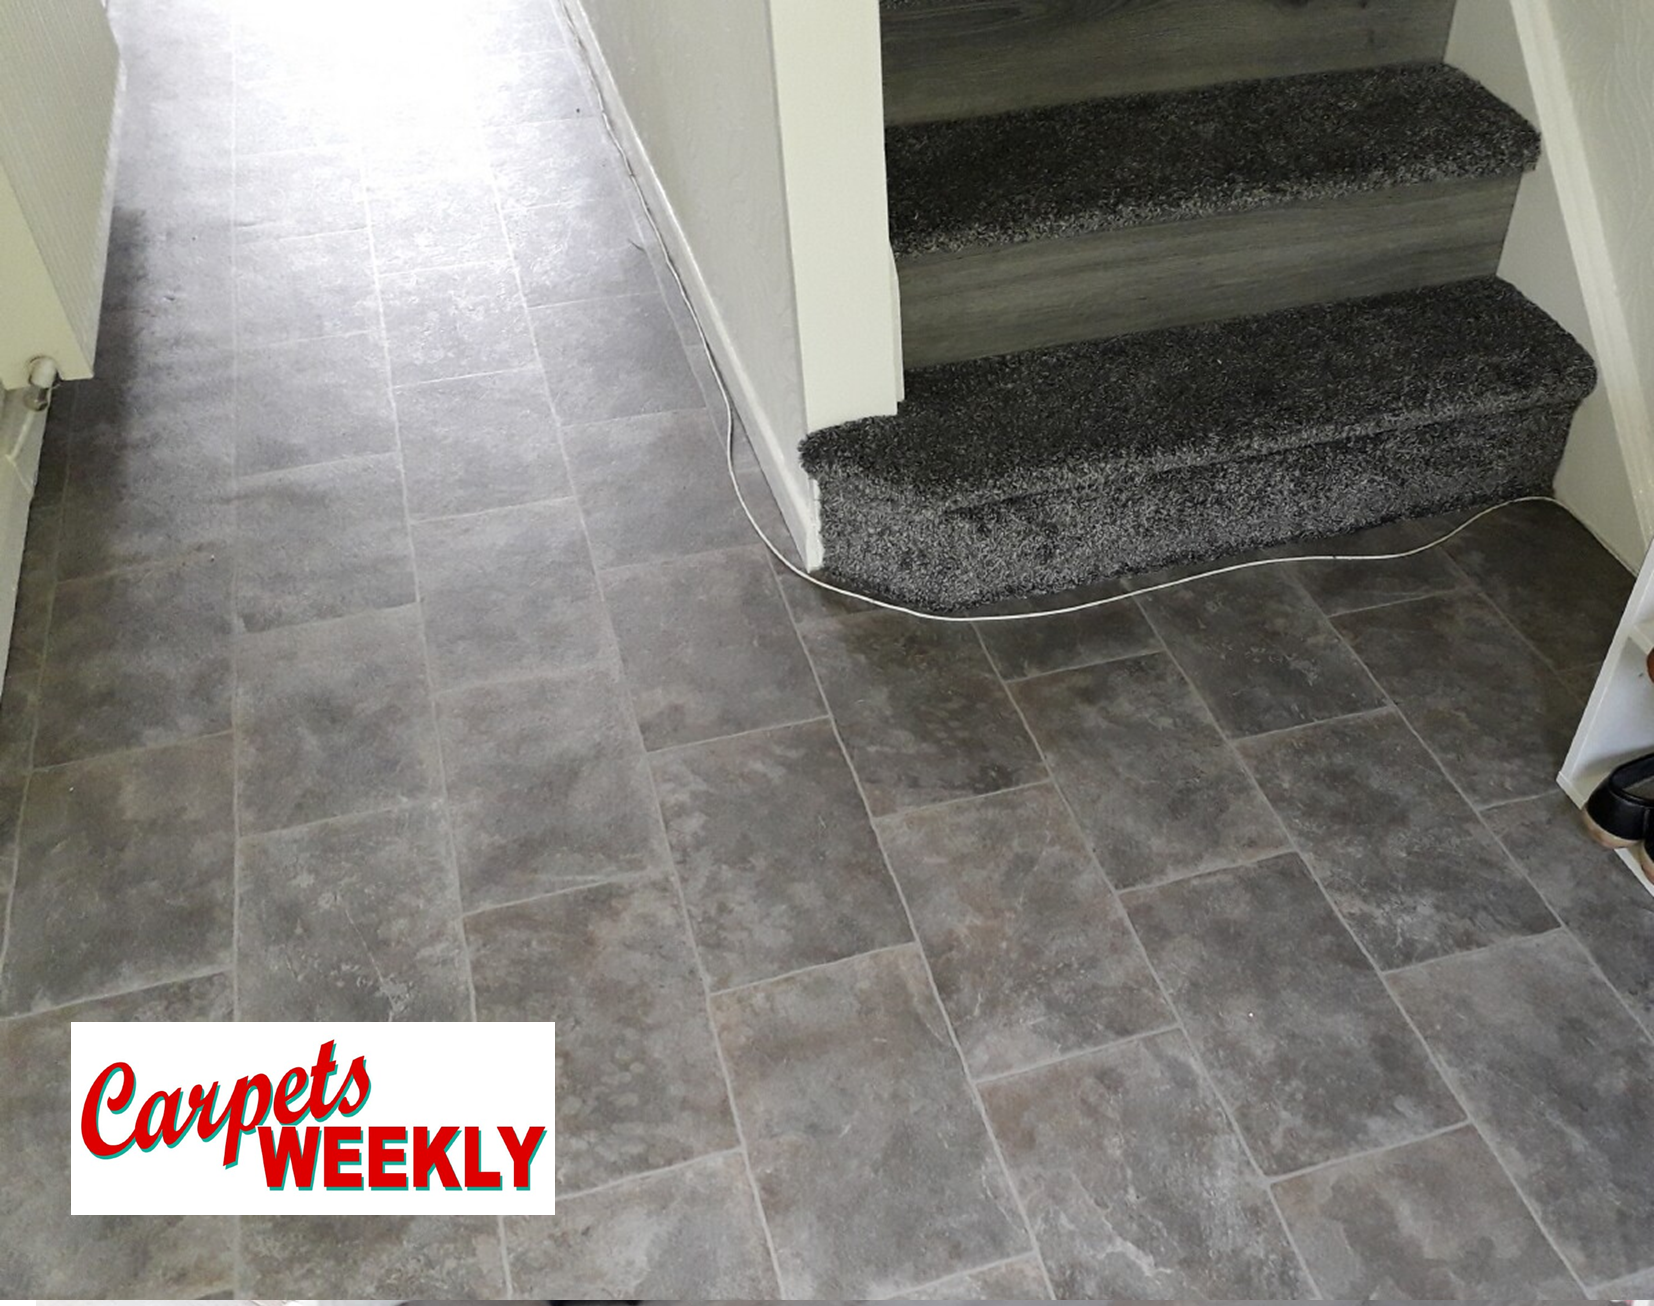 Carpets Weekly Apollo Deep Grey Carpet with Grey Oak laminate and Everest Vinylate Combi 2